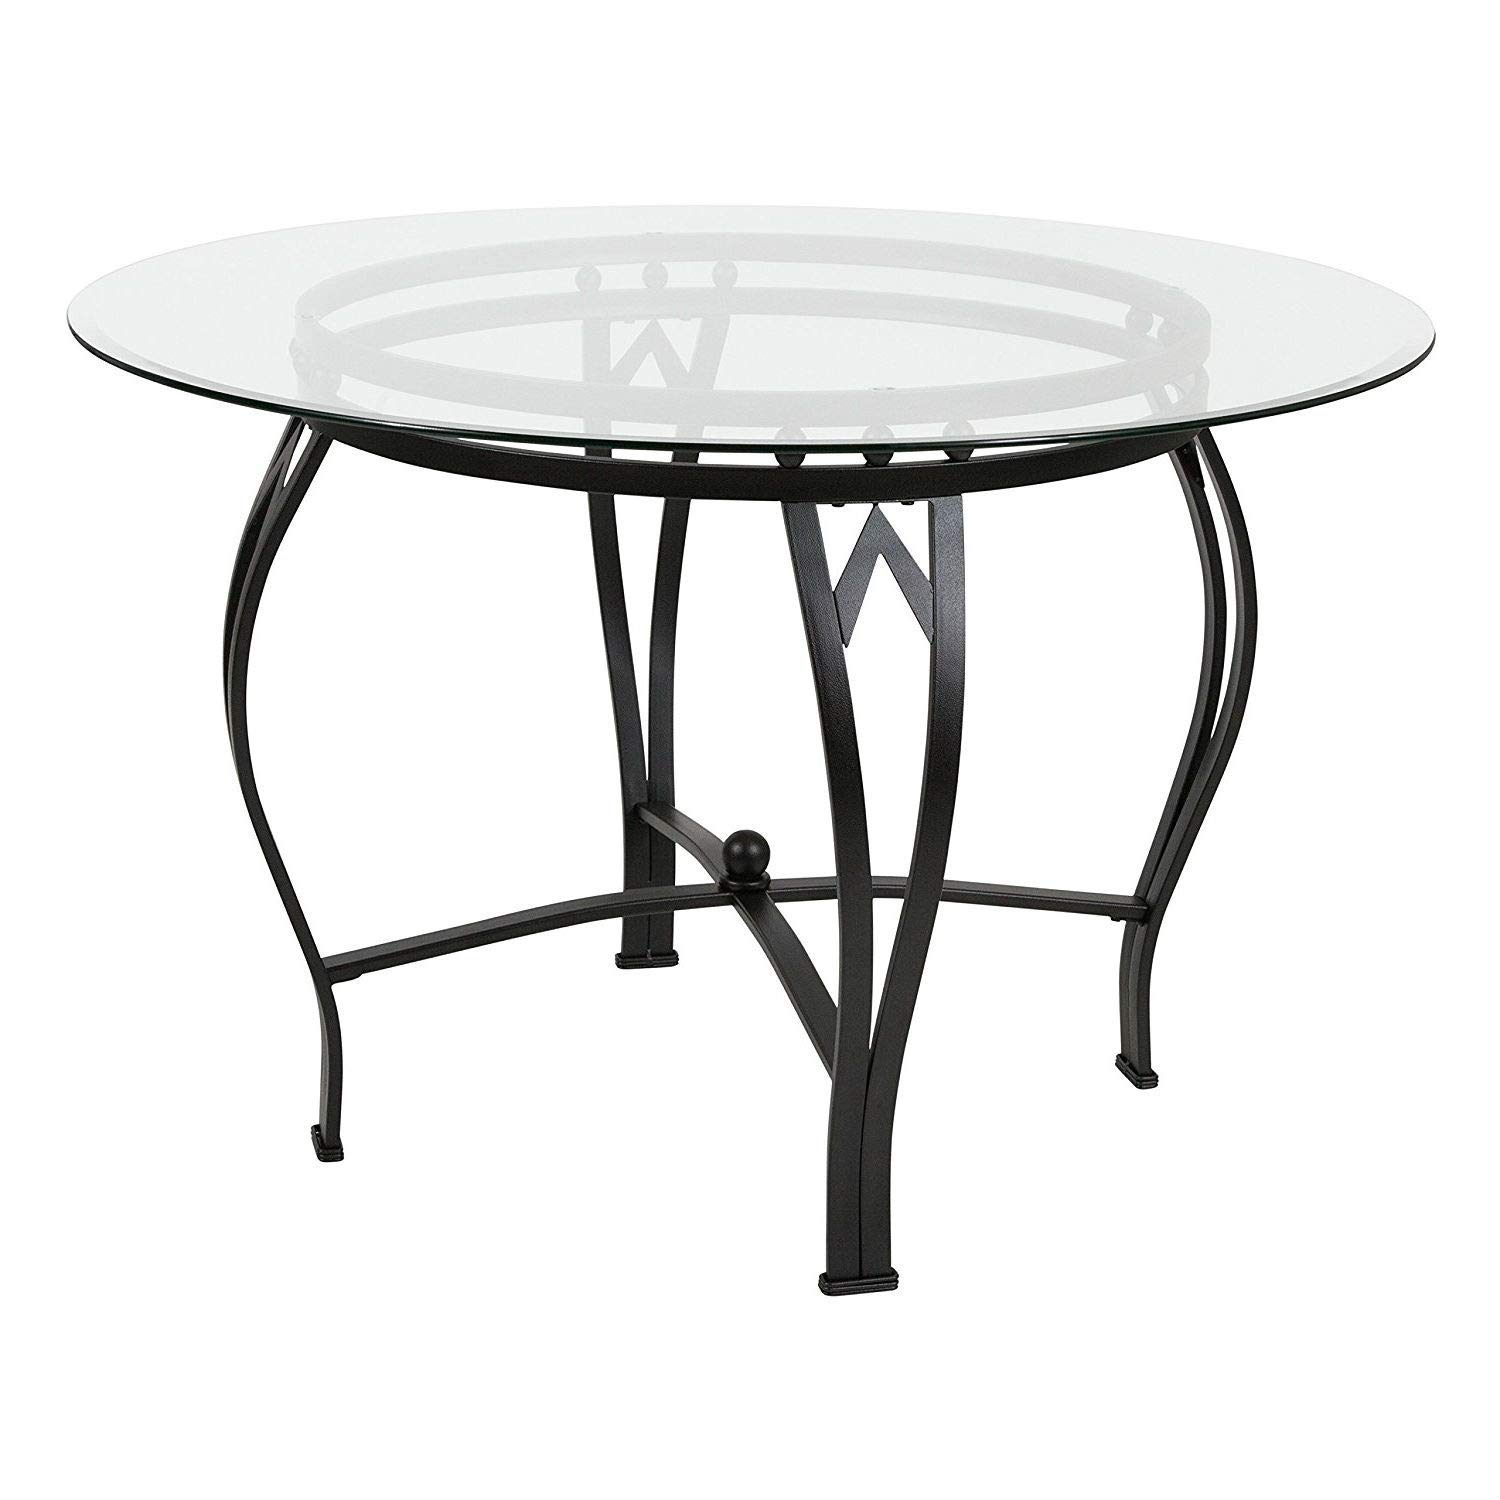 Dining Table Set Deals: Cheap Round Glass Dining Table Sets, Find Round Glass